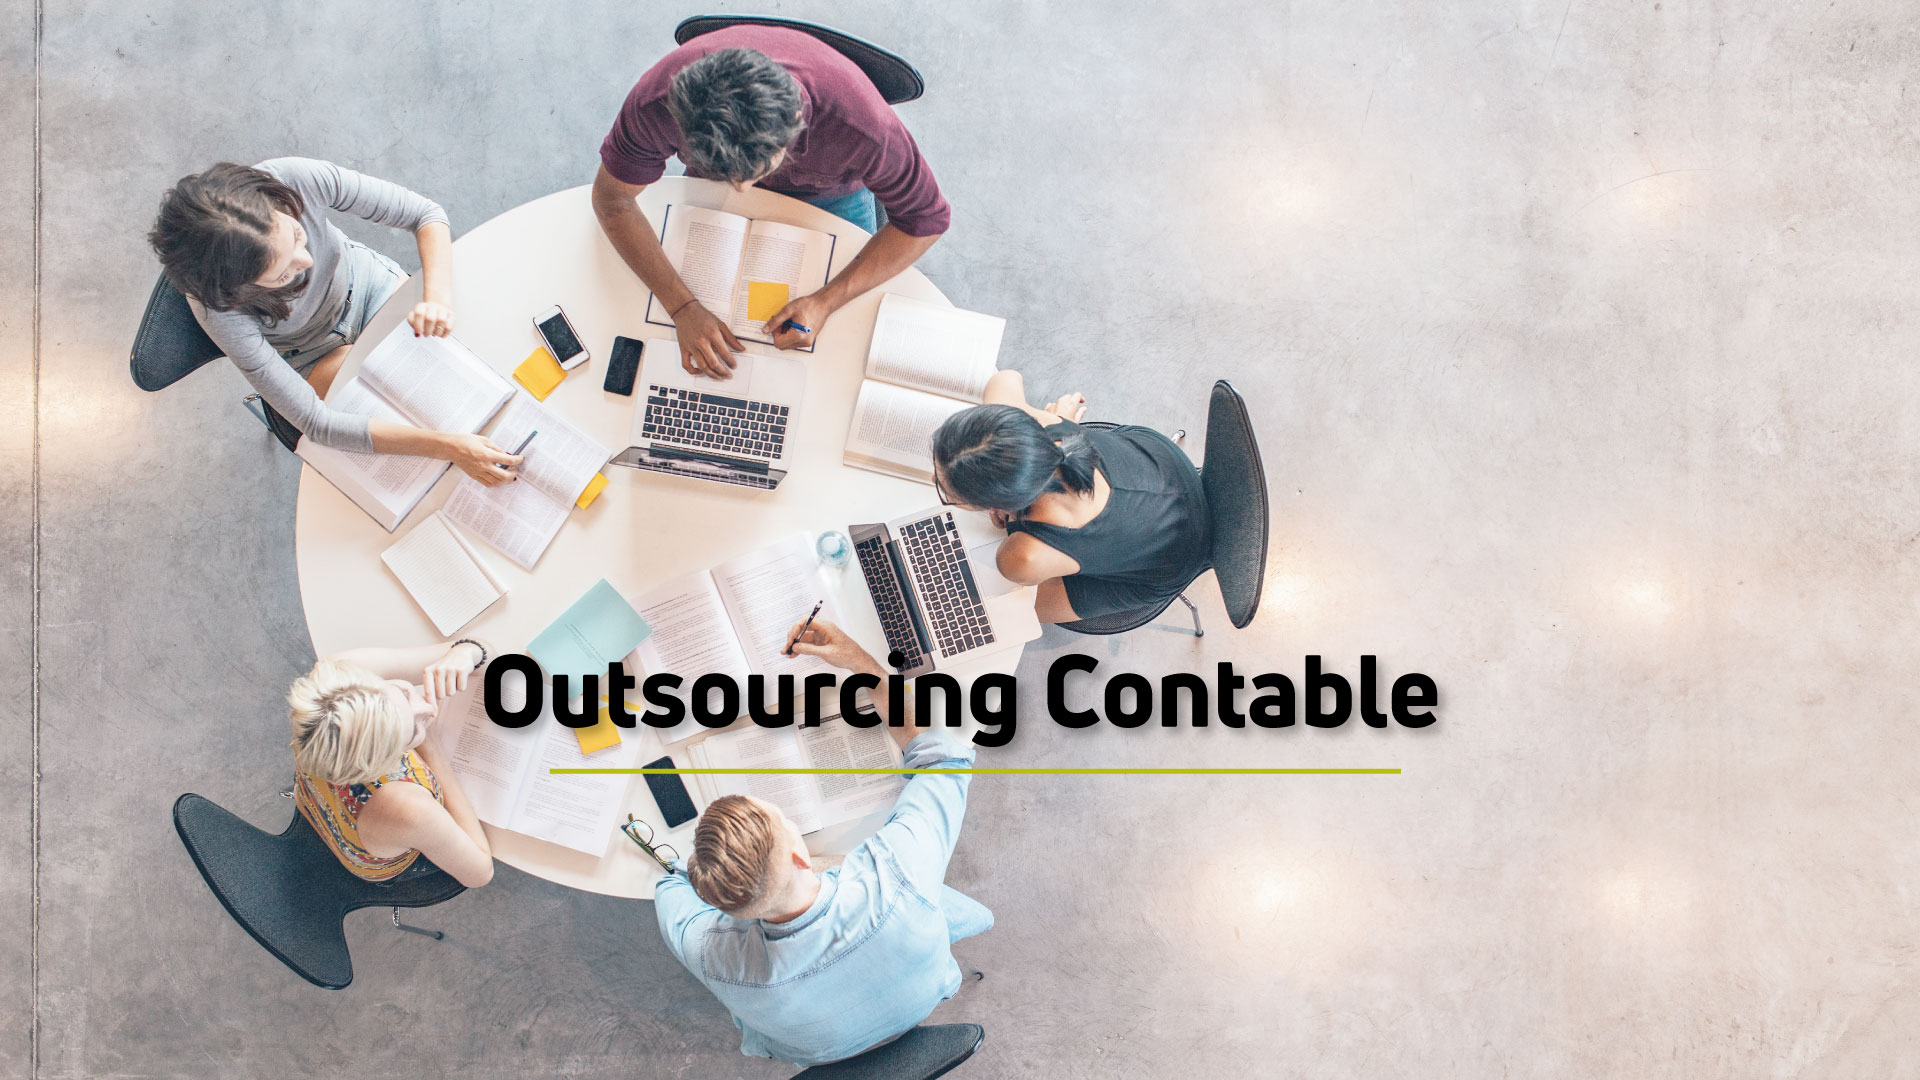 Outsoursing-Contable1